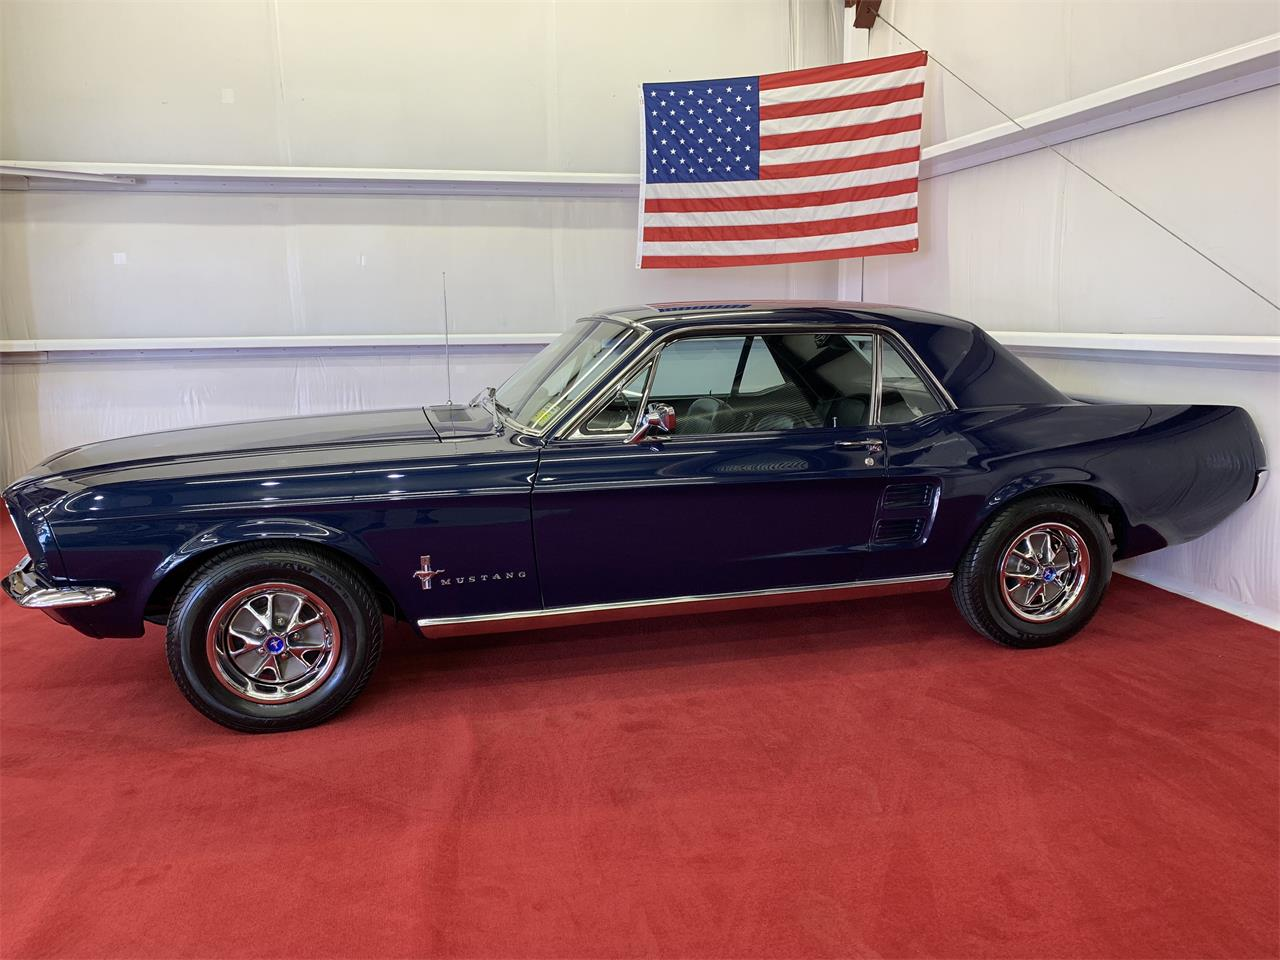 Large Picture of '67 Ford Mustang - $25,000.00 Offered by a Private Seller - OYJ6